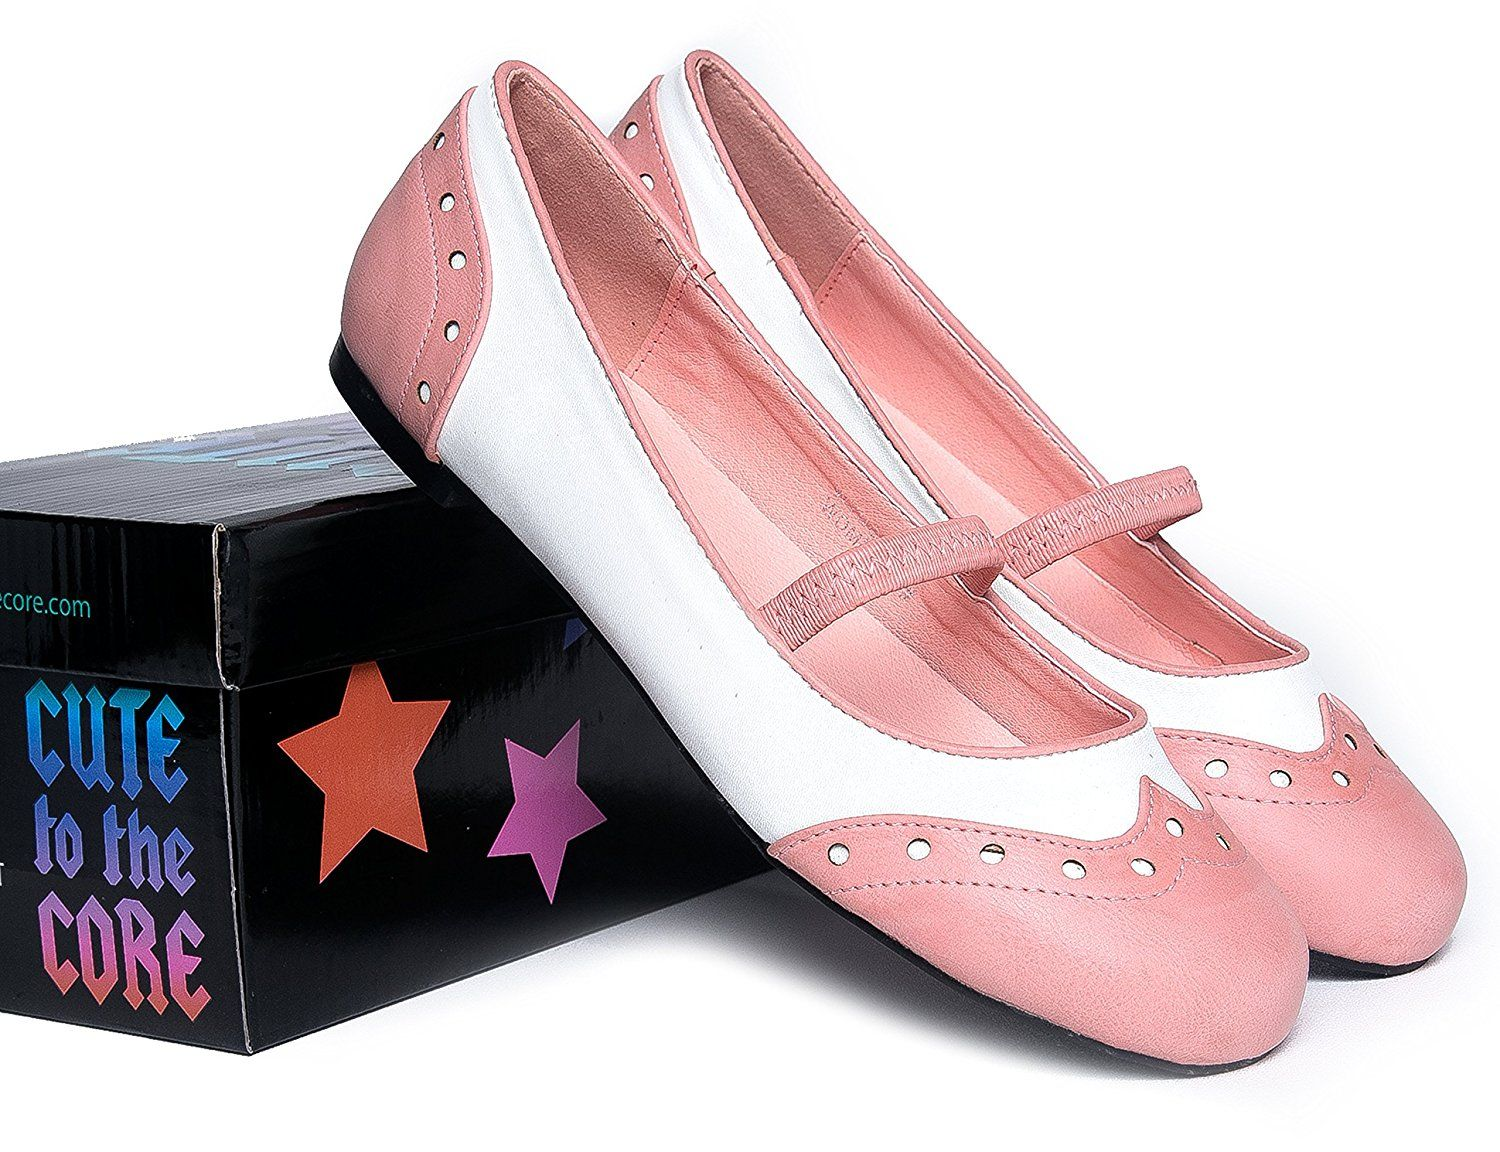 8cb2e7f1e Rockabilly Shoes- Pin Up Flats | Cute Pinup 1950s Mary Janes | Scallop Pink  and white spectator saddle shoes